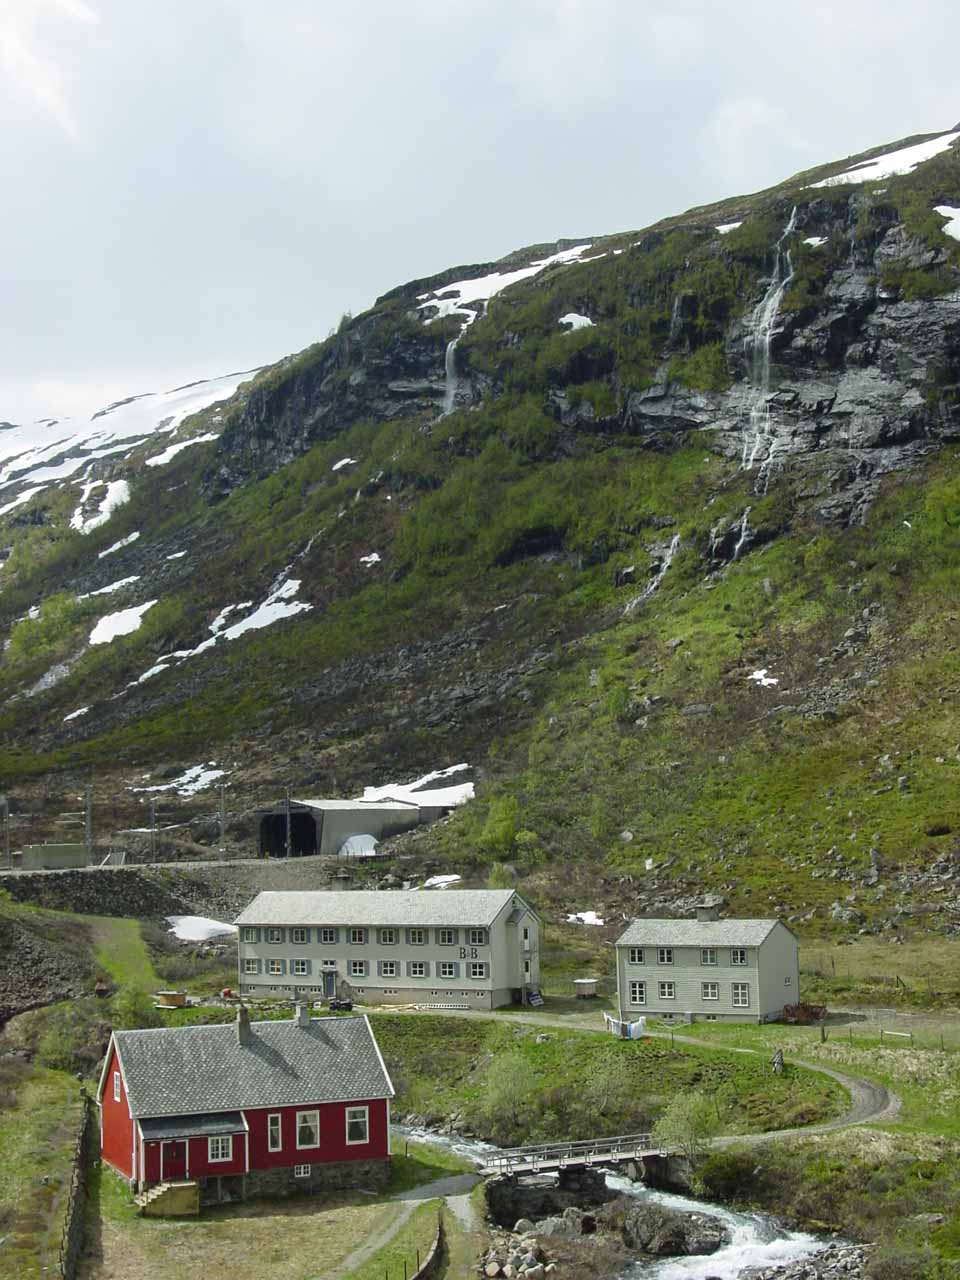 One of the highland stops, which I think was either the Myrdal Station itself or the one before it